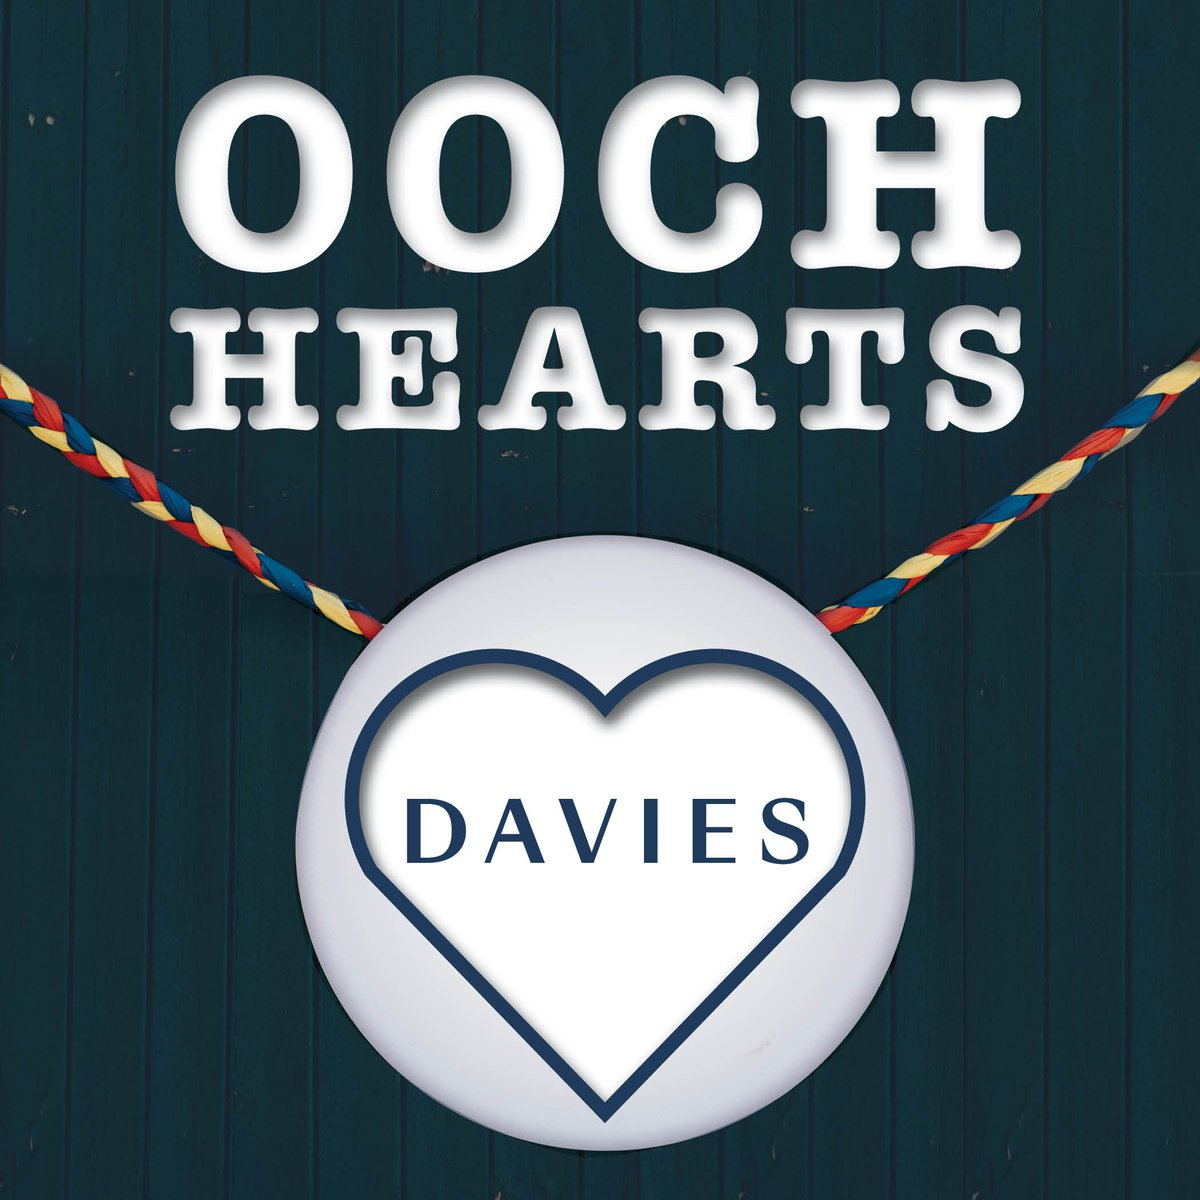 Happy #TBT Everyone! We're throwing back to our #ImaginetheMagic Gala & giving a shout out to @_Davies_ We're grateful for the #support of amazing partners who help make the #MagicOfOoch possible for kids affected by childhood cancer. Davies is one of those partners - thank you!